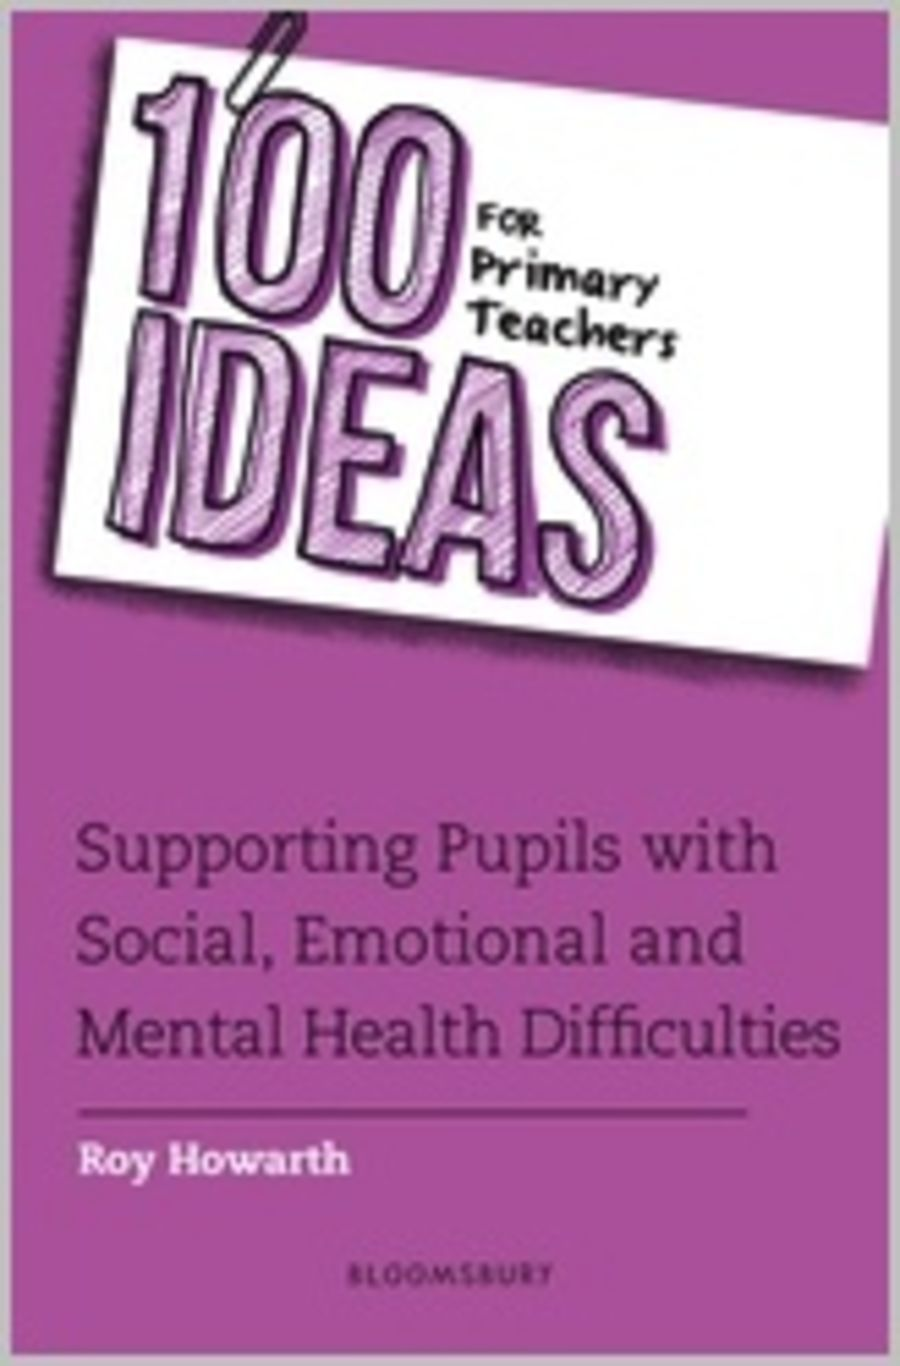 100 Ideas for Primary Teachers in Supporting Pupils with Social, Emotional and Mental Health Difficulties